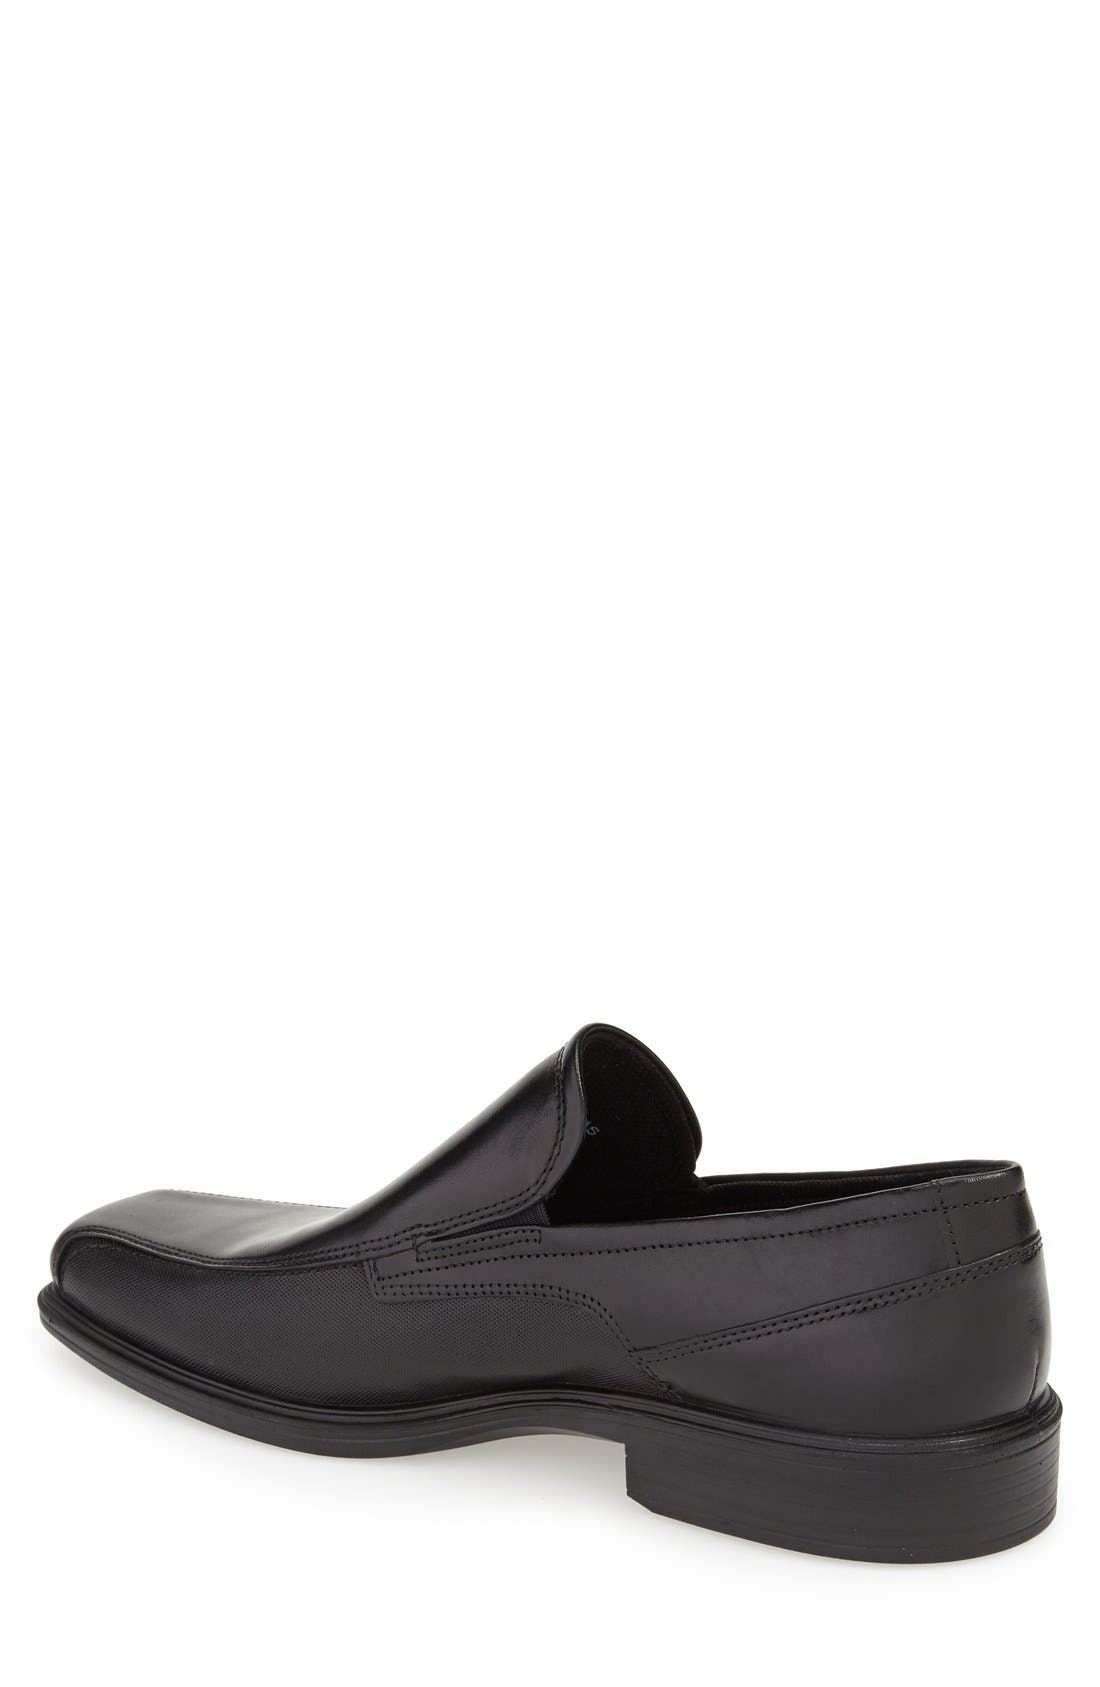 'Johannesburg' Venetian Loafer,                             Alternate thumbnail 2, color,                             BLACK LEATHER